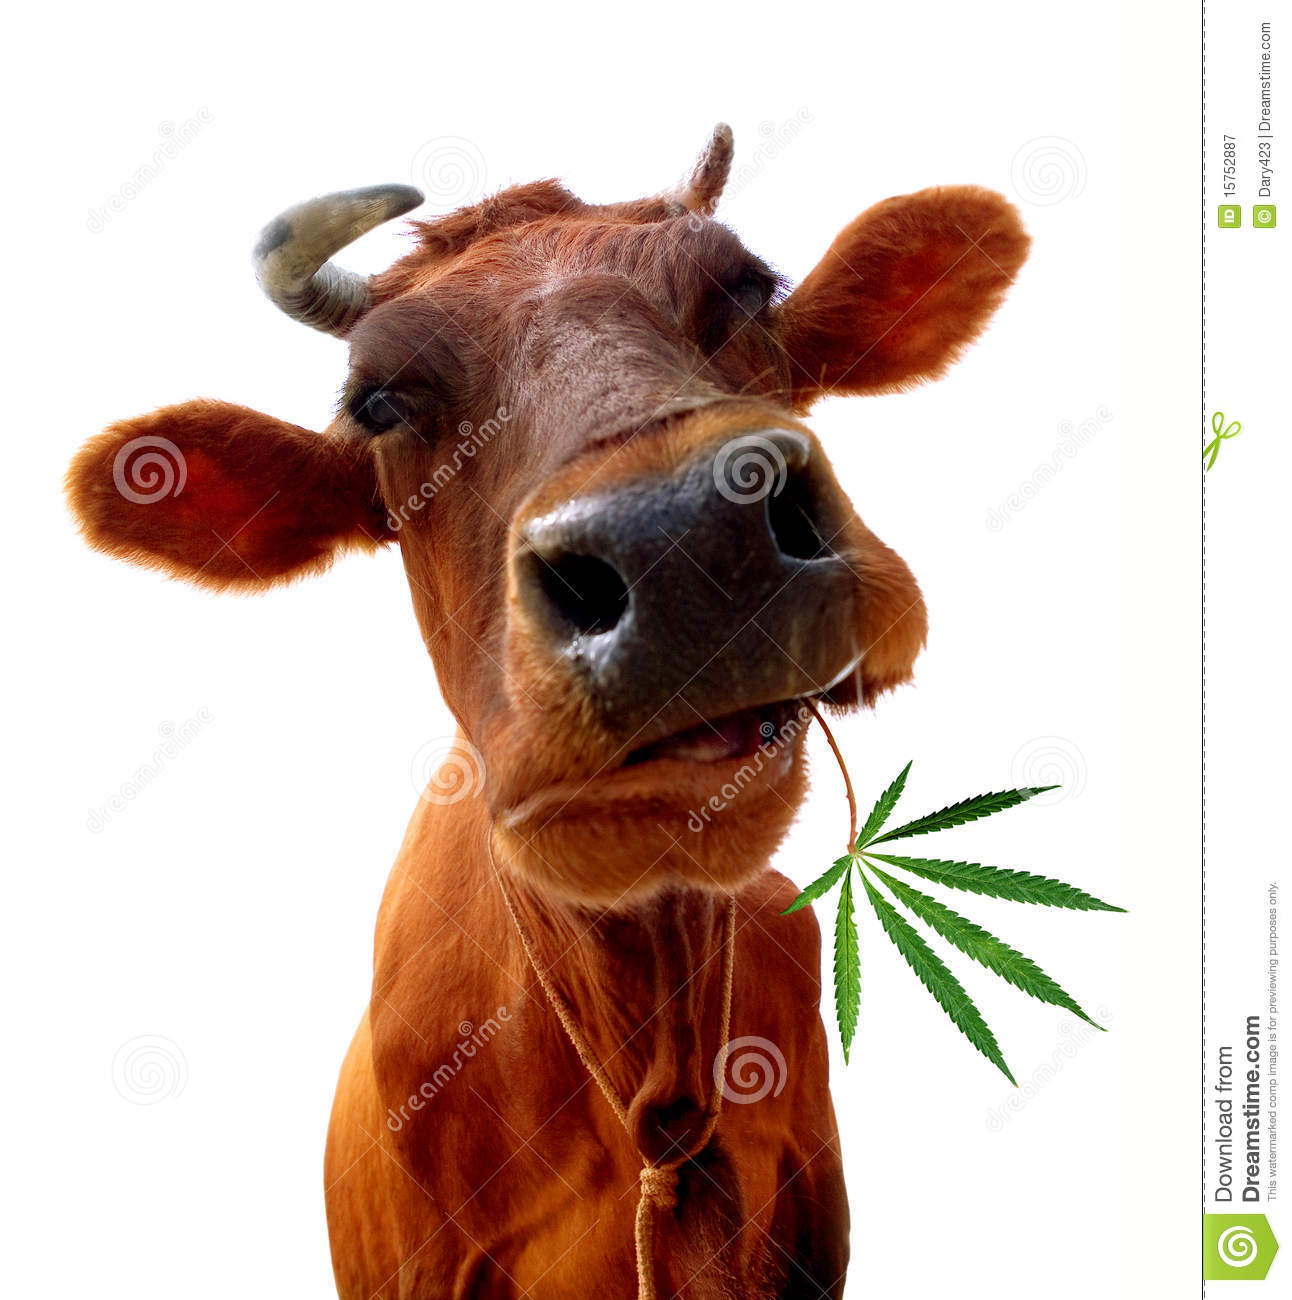 Cow Eating Royalty Free Stock Photography Image 15752887